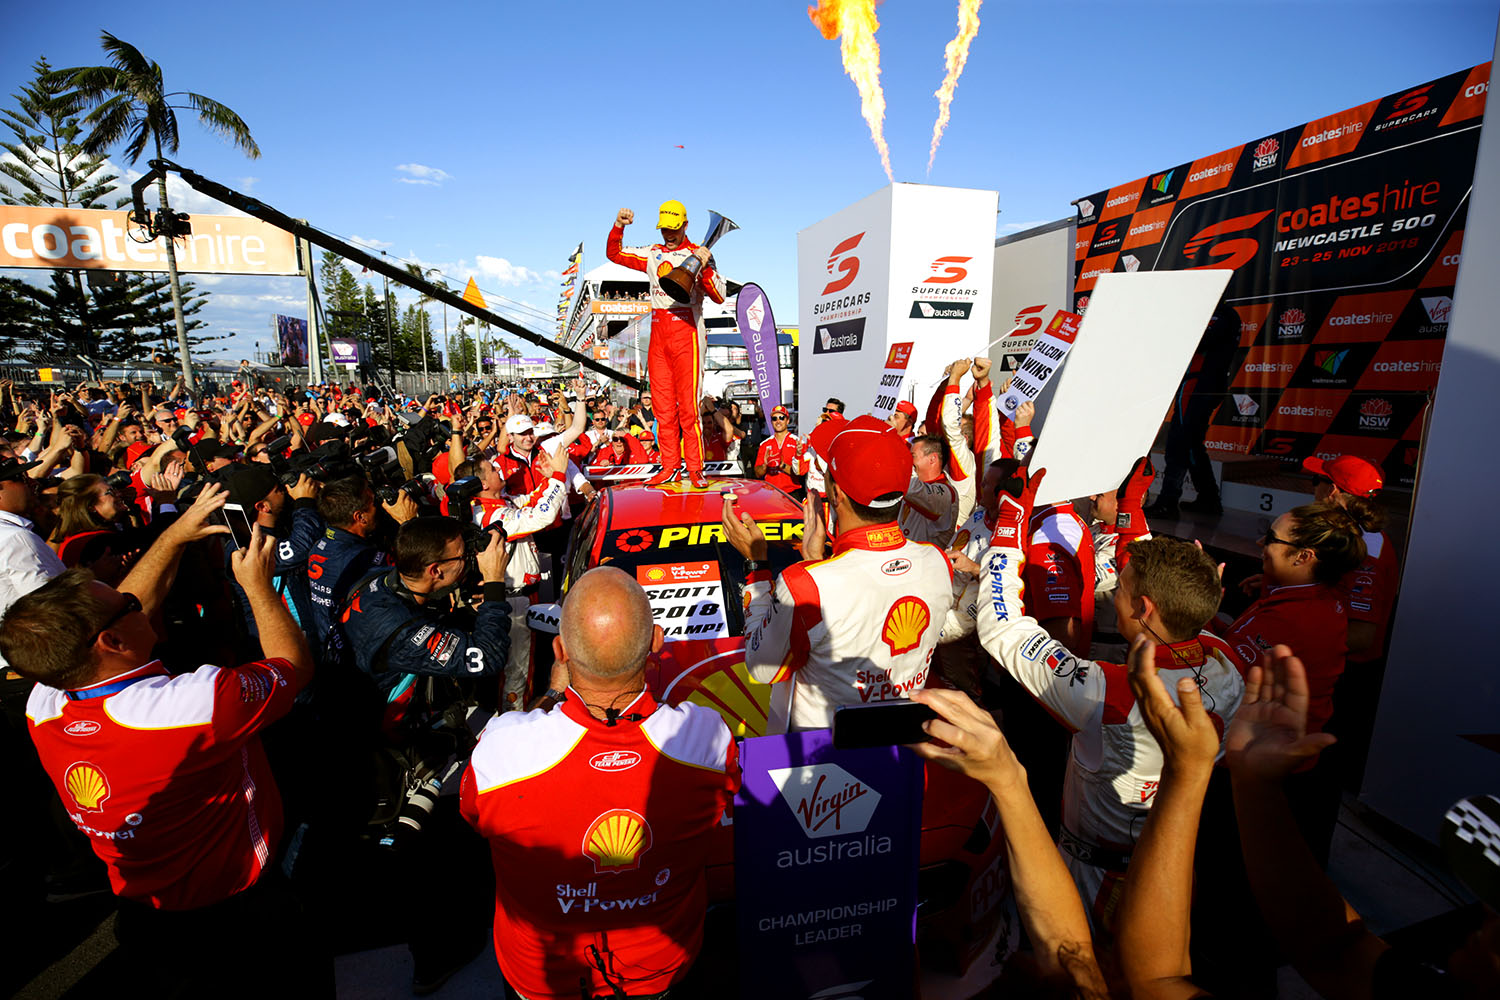 Championship win 'redemption' for McLaughlin